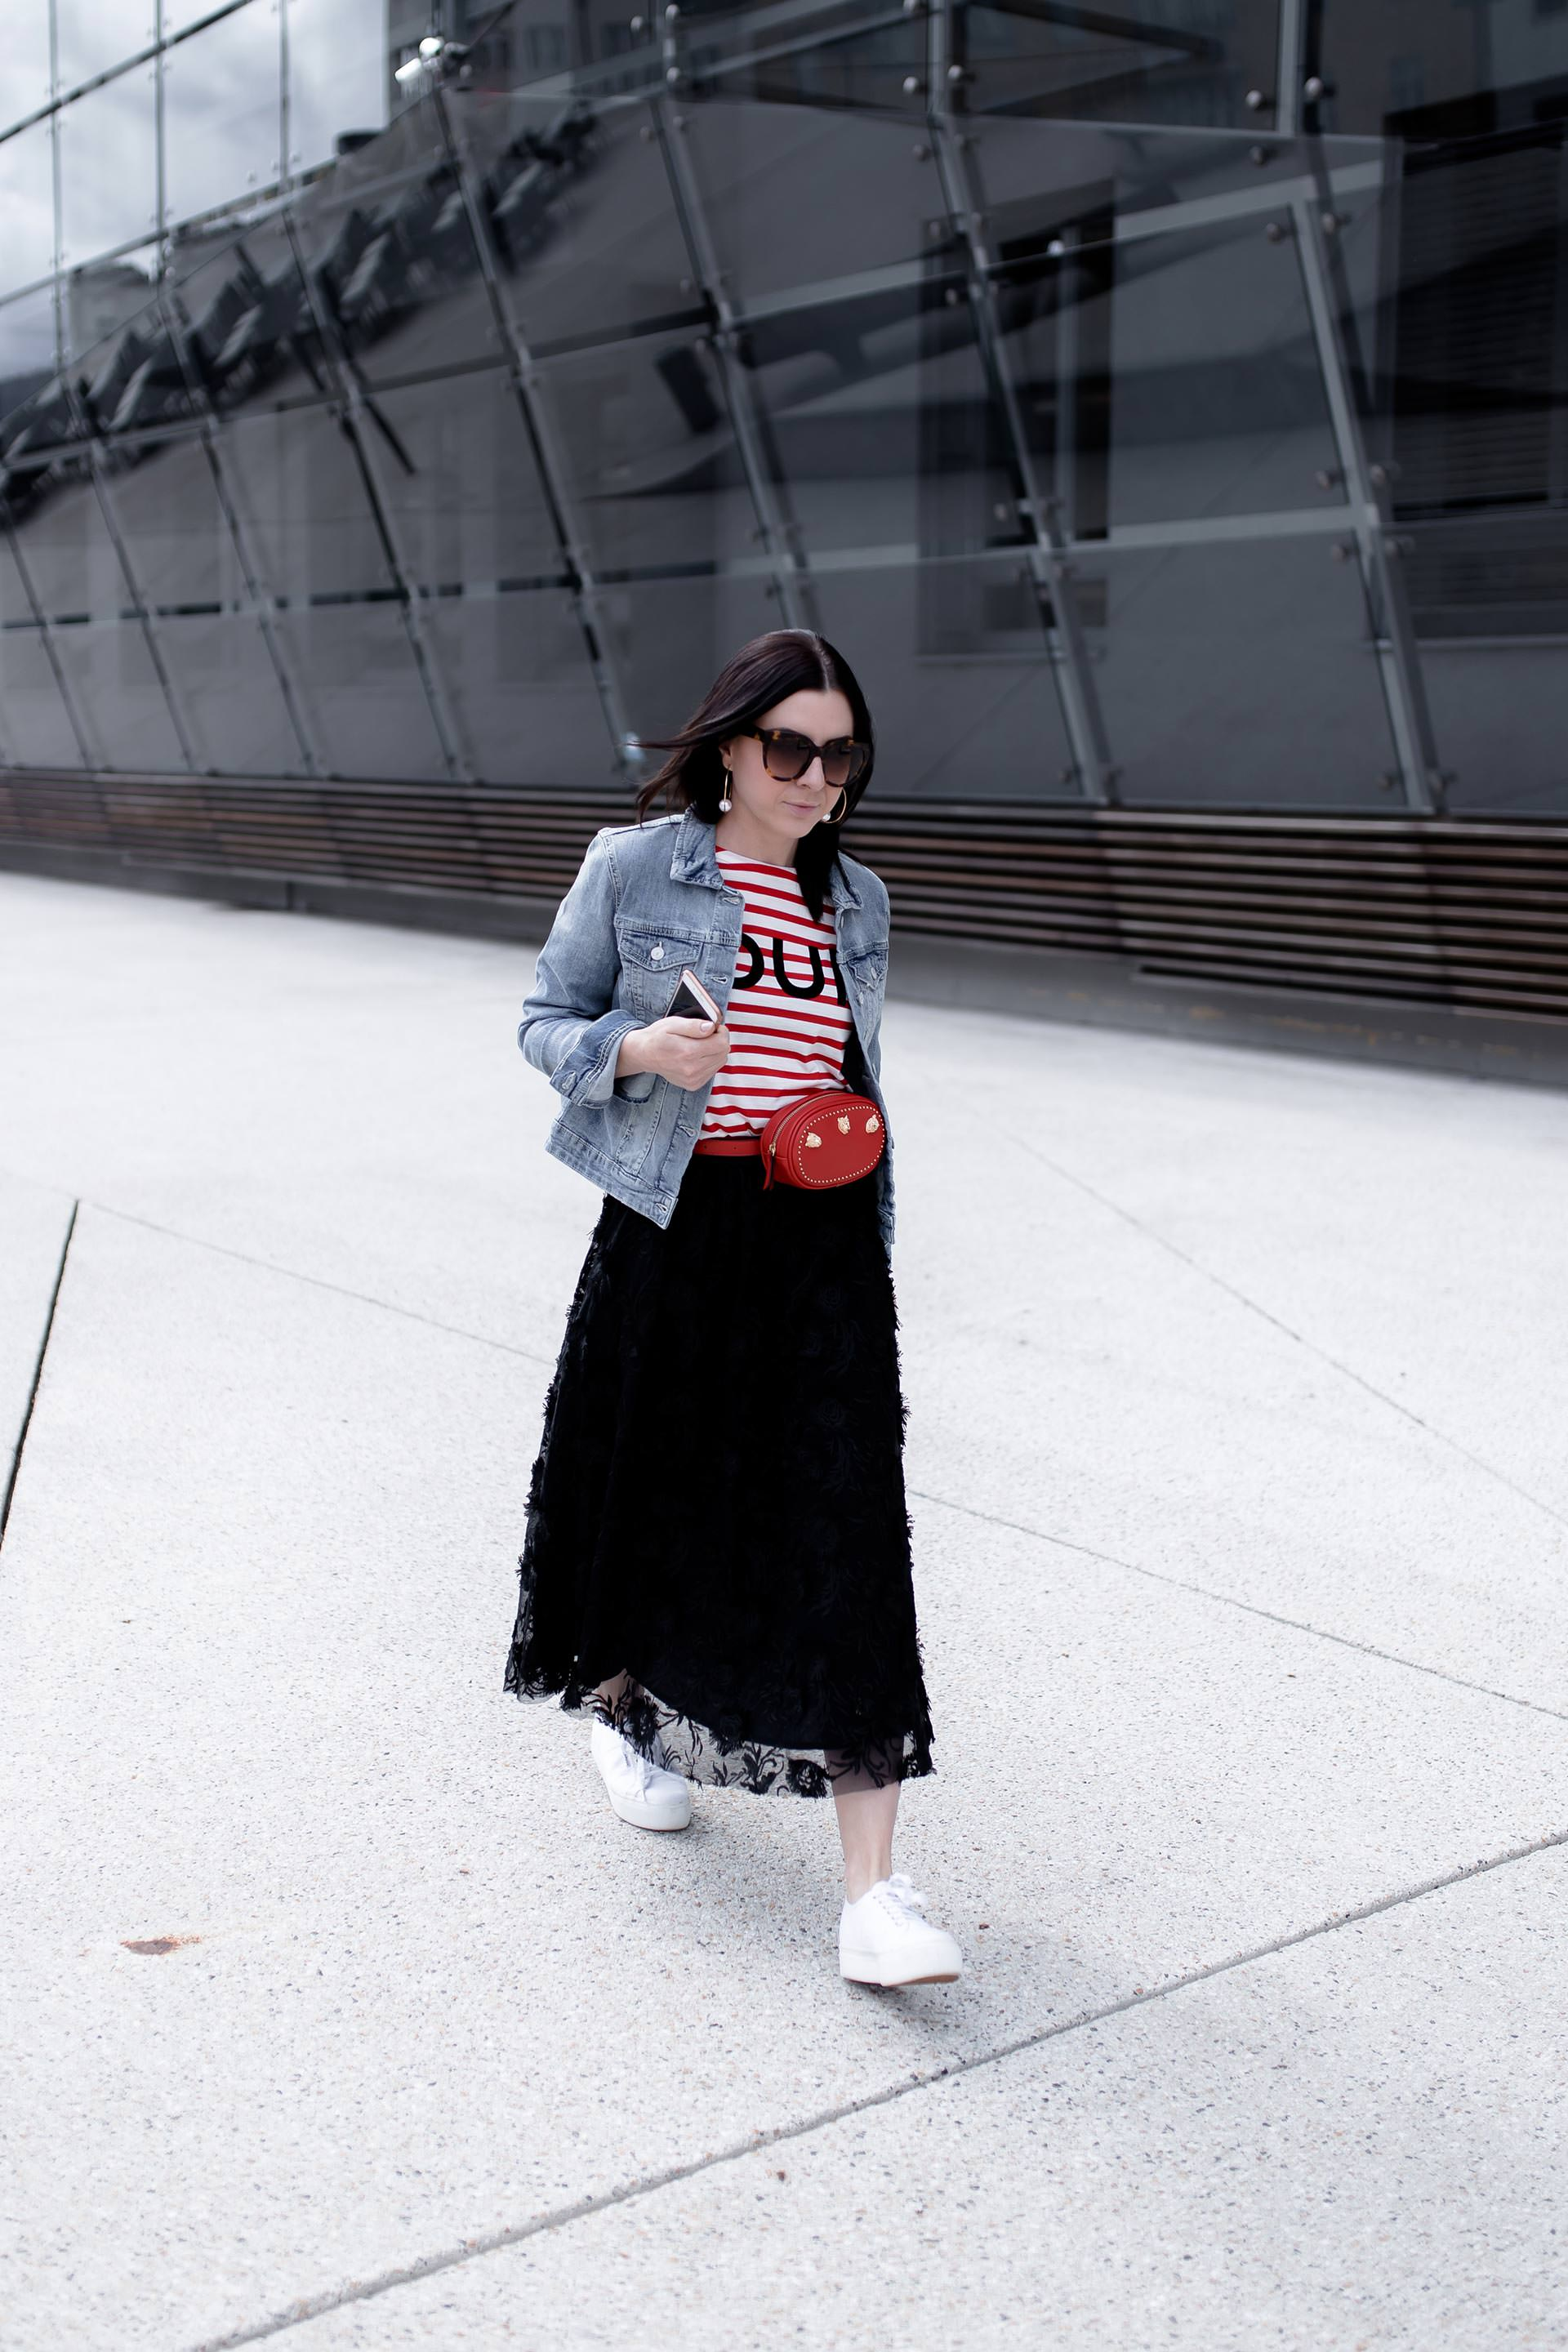 Frühlingsoutfit mit schwarzem Midirock, Plateau Sneakers von Superga, cropped Jeansjacke, Streifenshirt und stylischer Belt Bag in Rot, Fashion Blogger, Modetrends, Casual Streetstyle, www.whoismocca.com